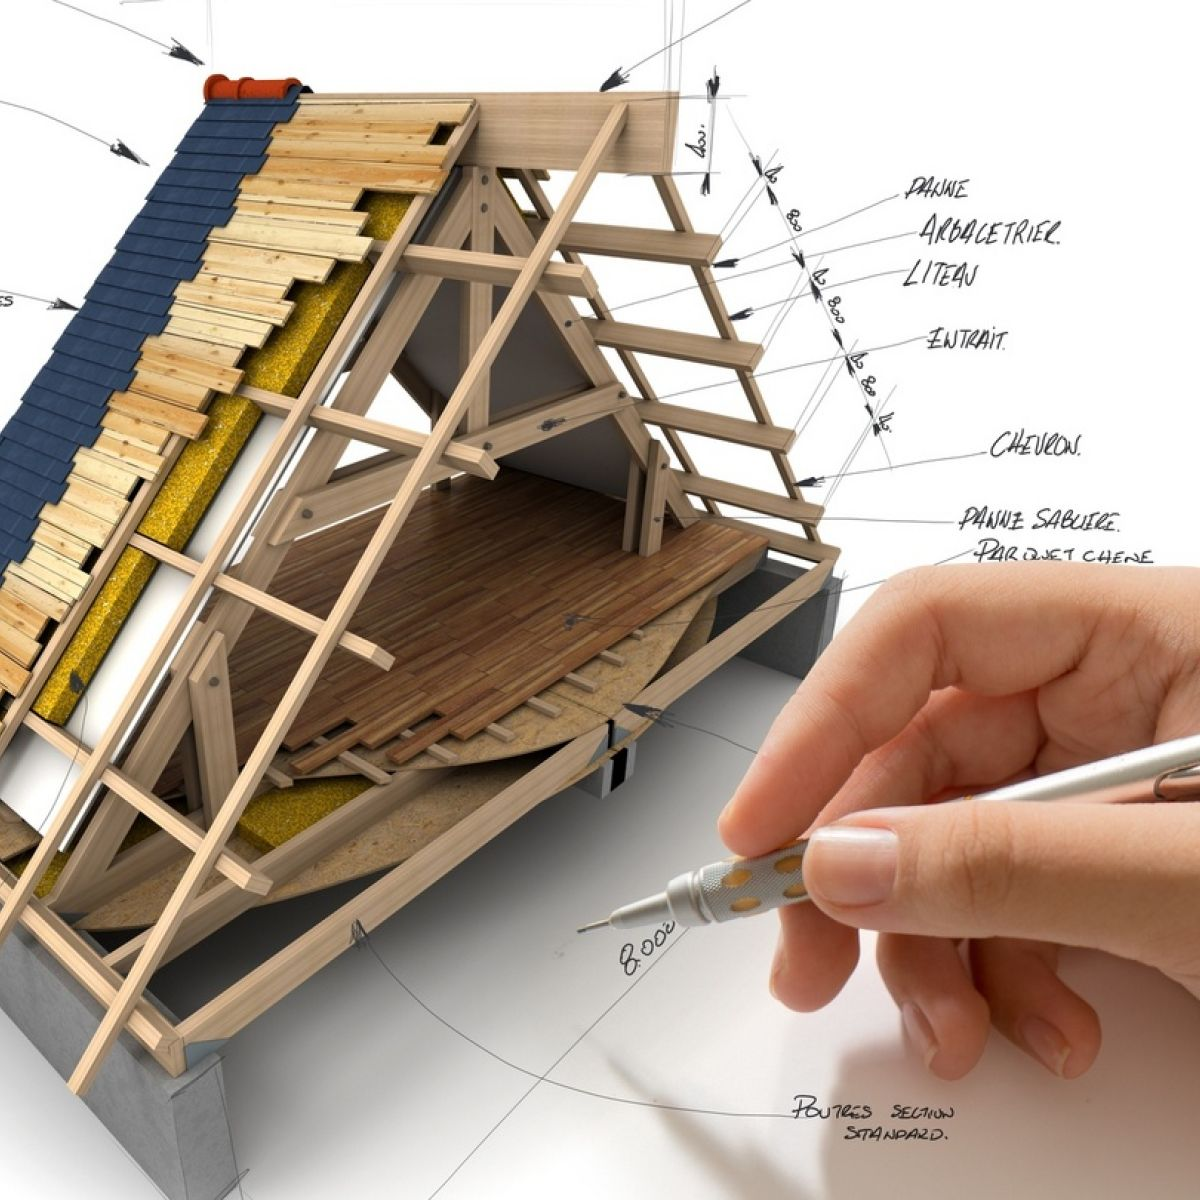 How Can We Get A Flat Roof And Satisfy Insurance Requirements